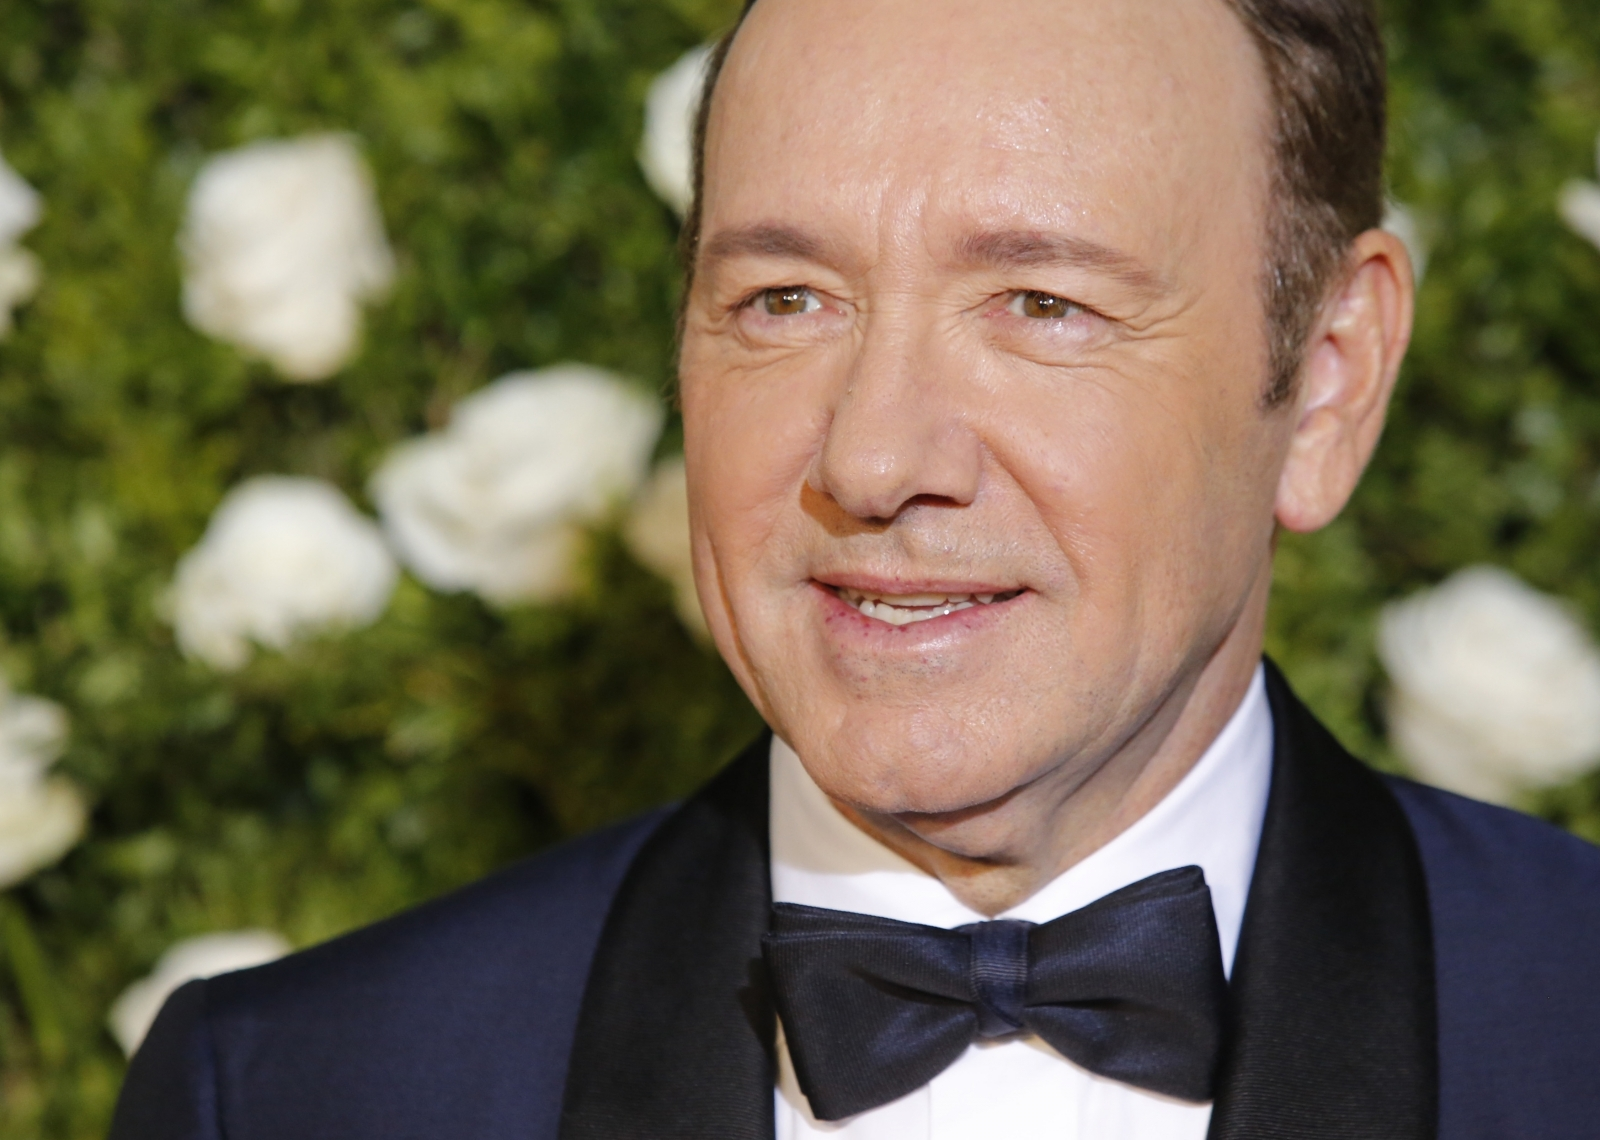 Police investigating third sexual assault complaint made against Kevin Spacey